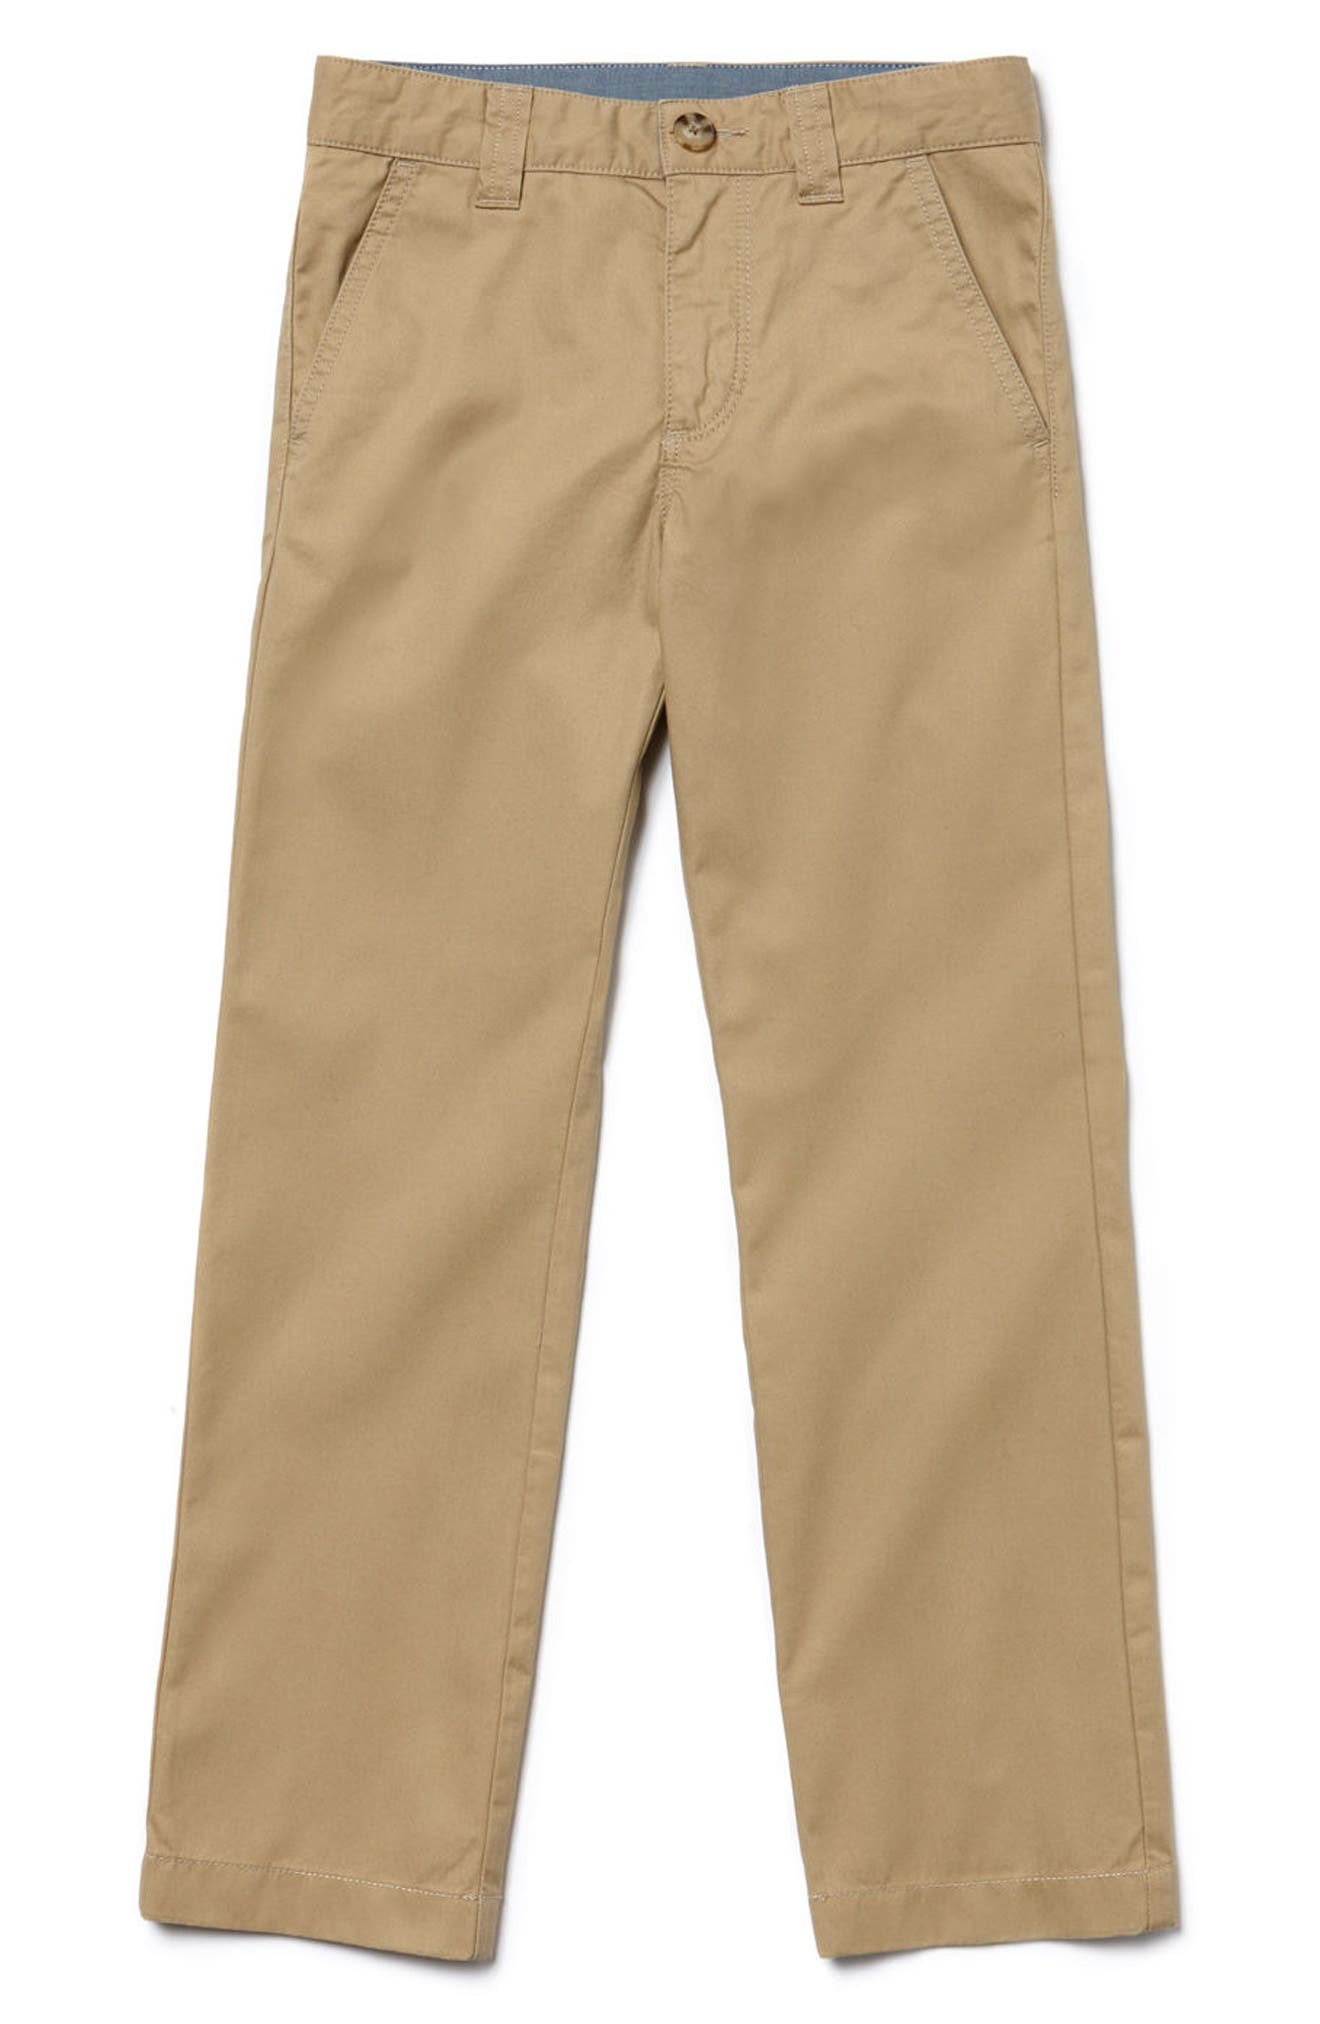 Alternate Image 1 Selected - Lacoste Classic Chinos (Little Boys)